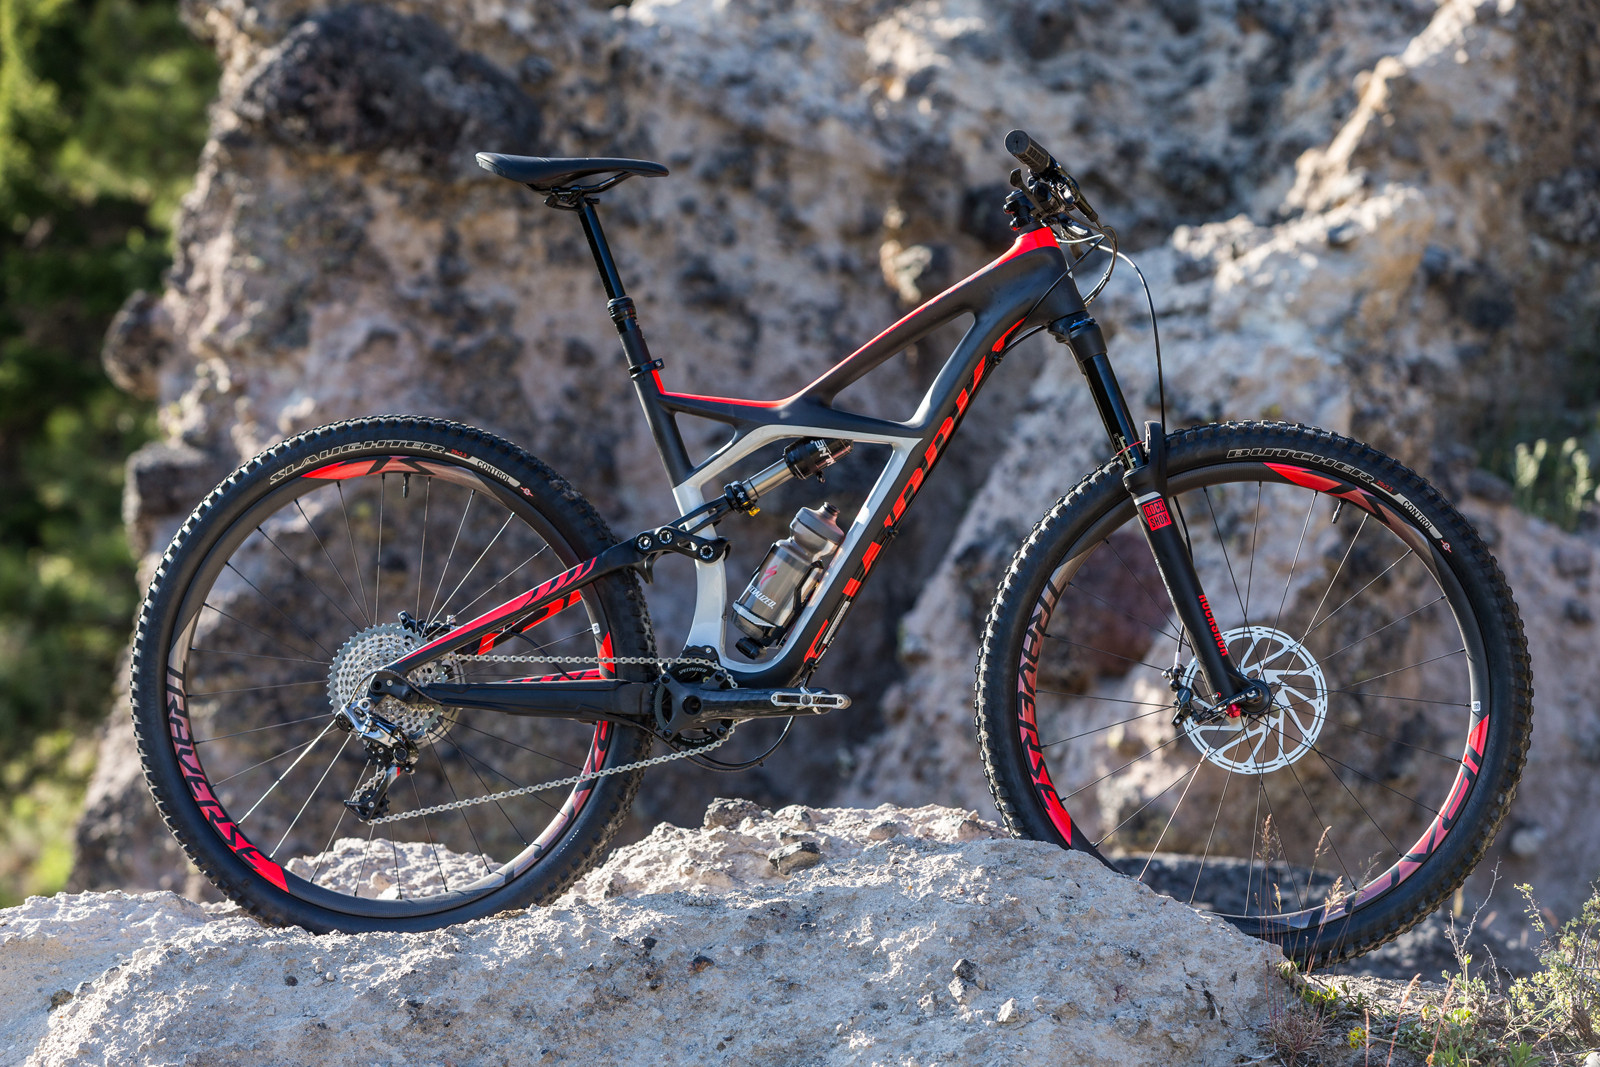 2015 Specialized Enduro 29 and 650b - First Look: 2015 Specialized Enduro 29 and 650b - Mountain Biking Pictures - Vital MTB